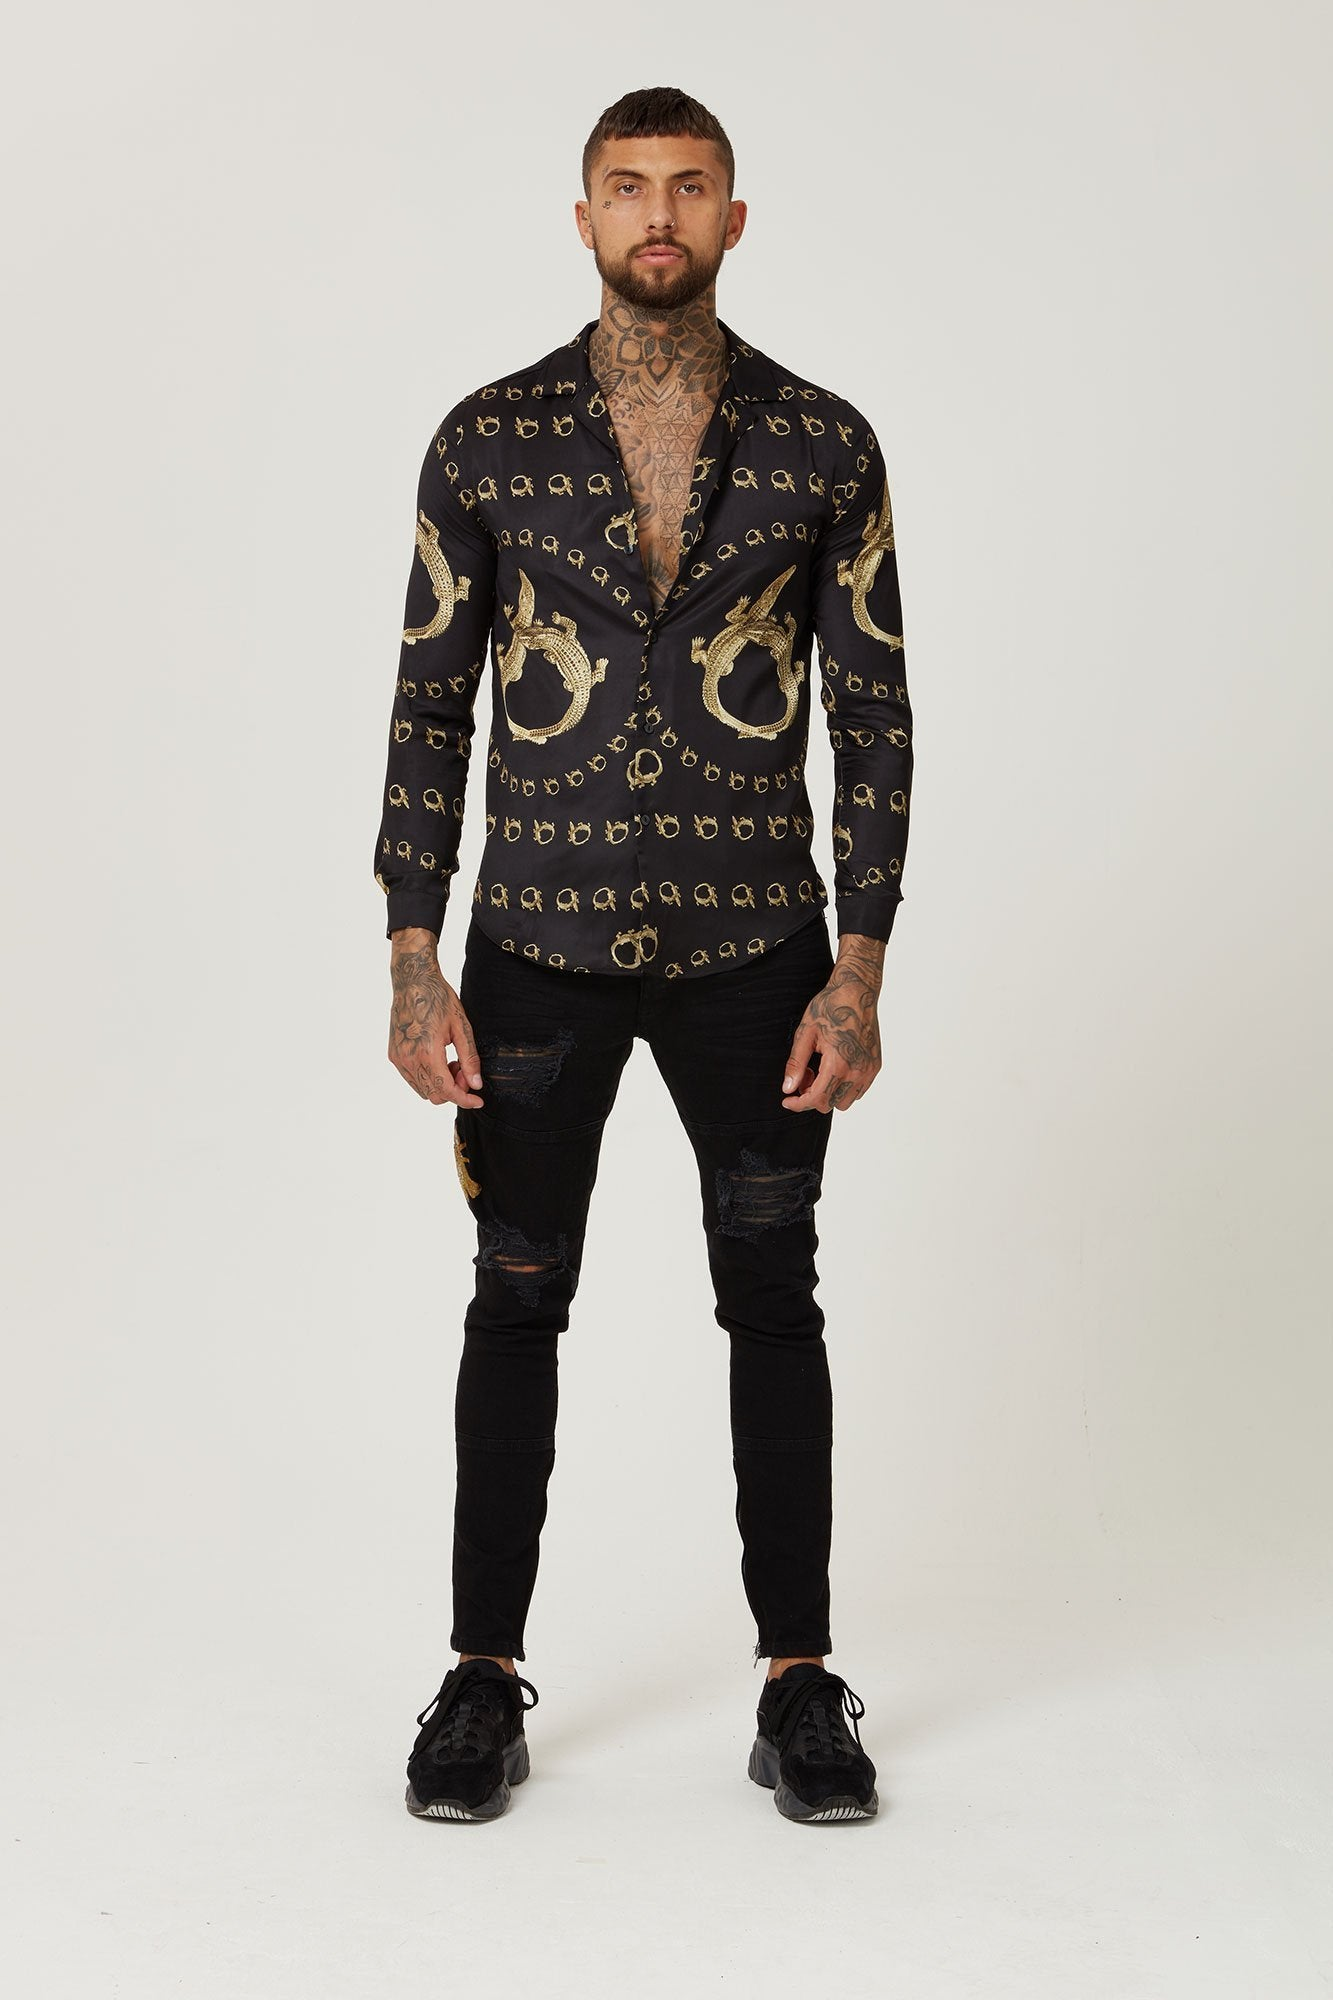 Hermano Crocodile Cuban Shirt Satin